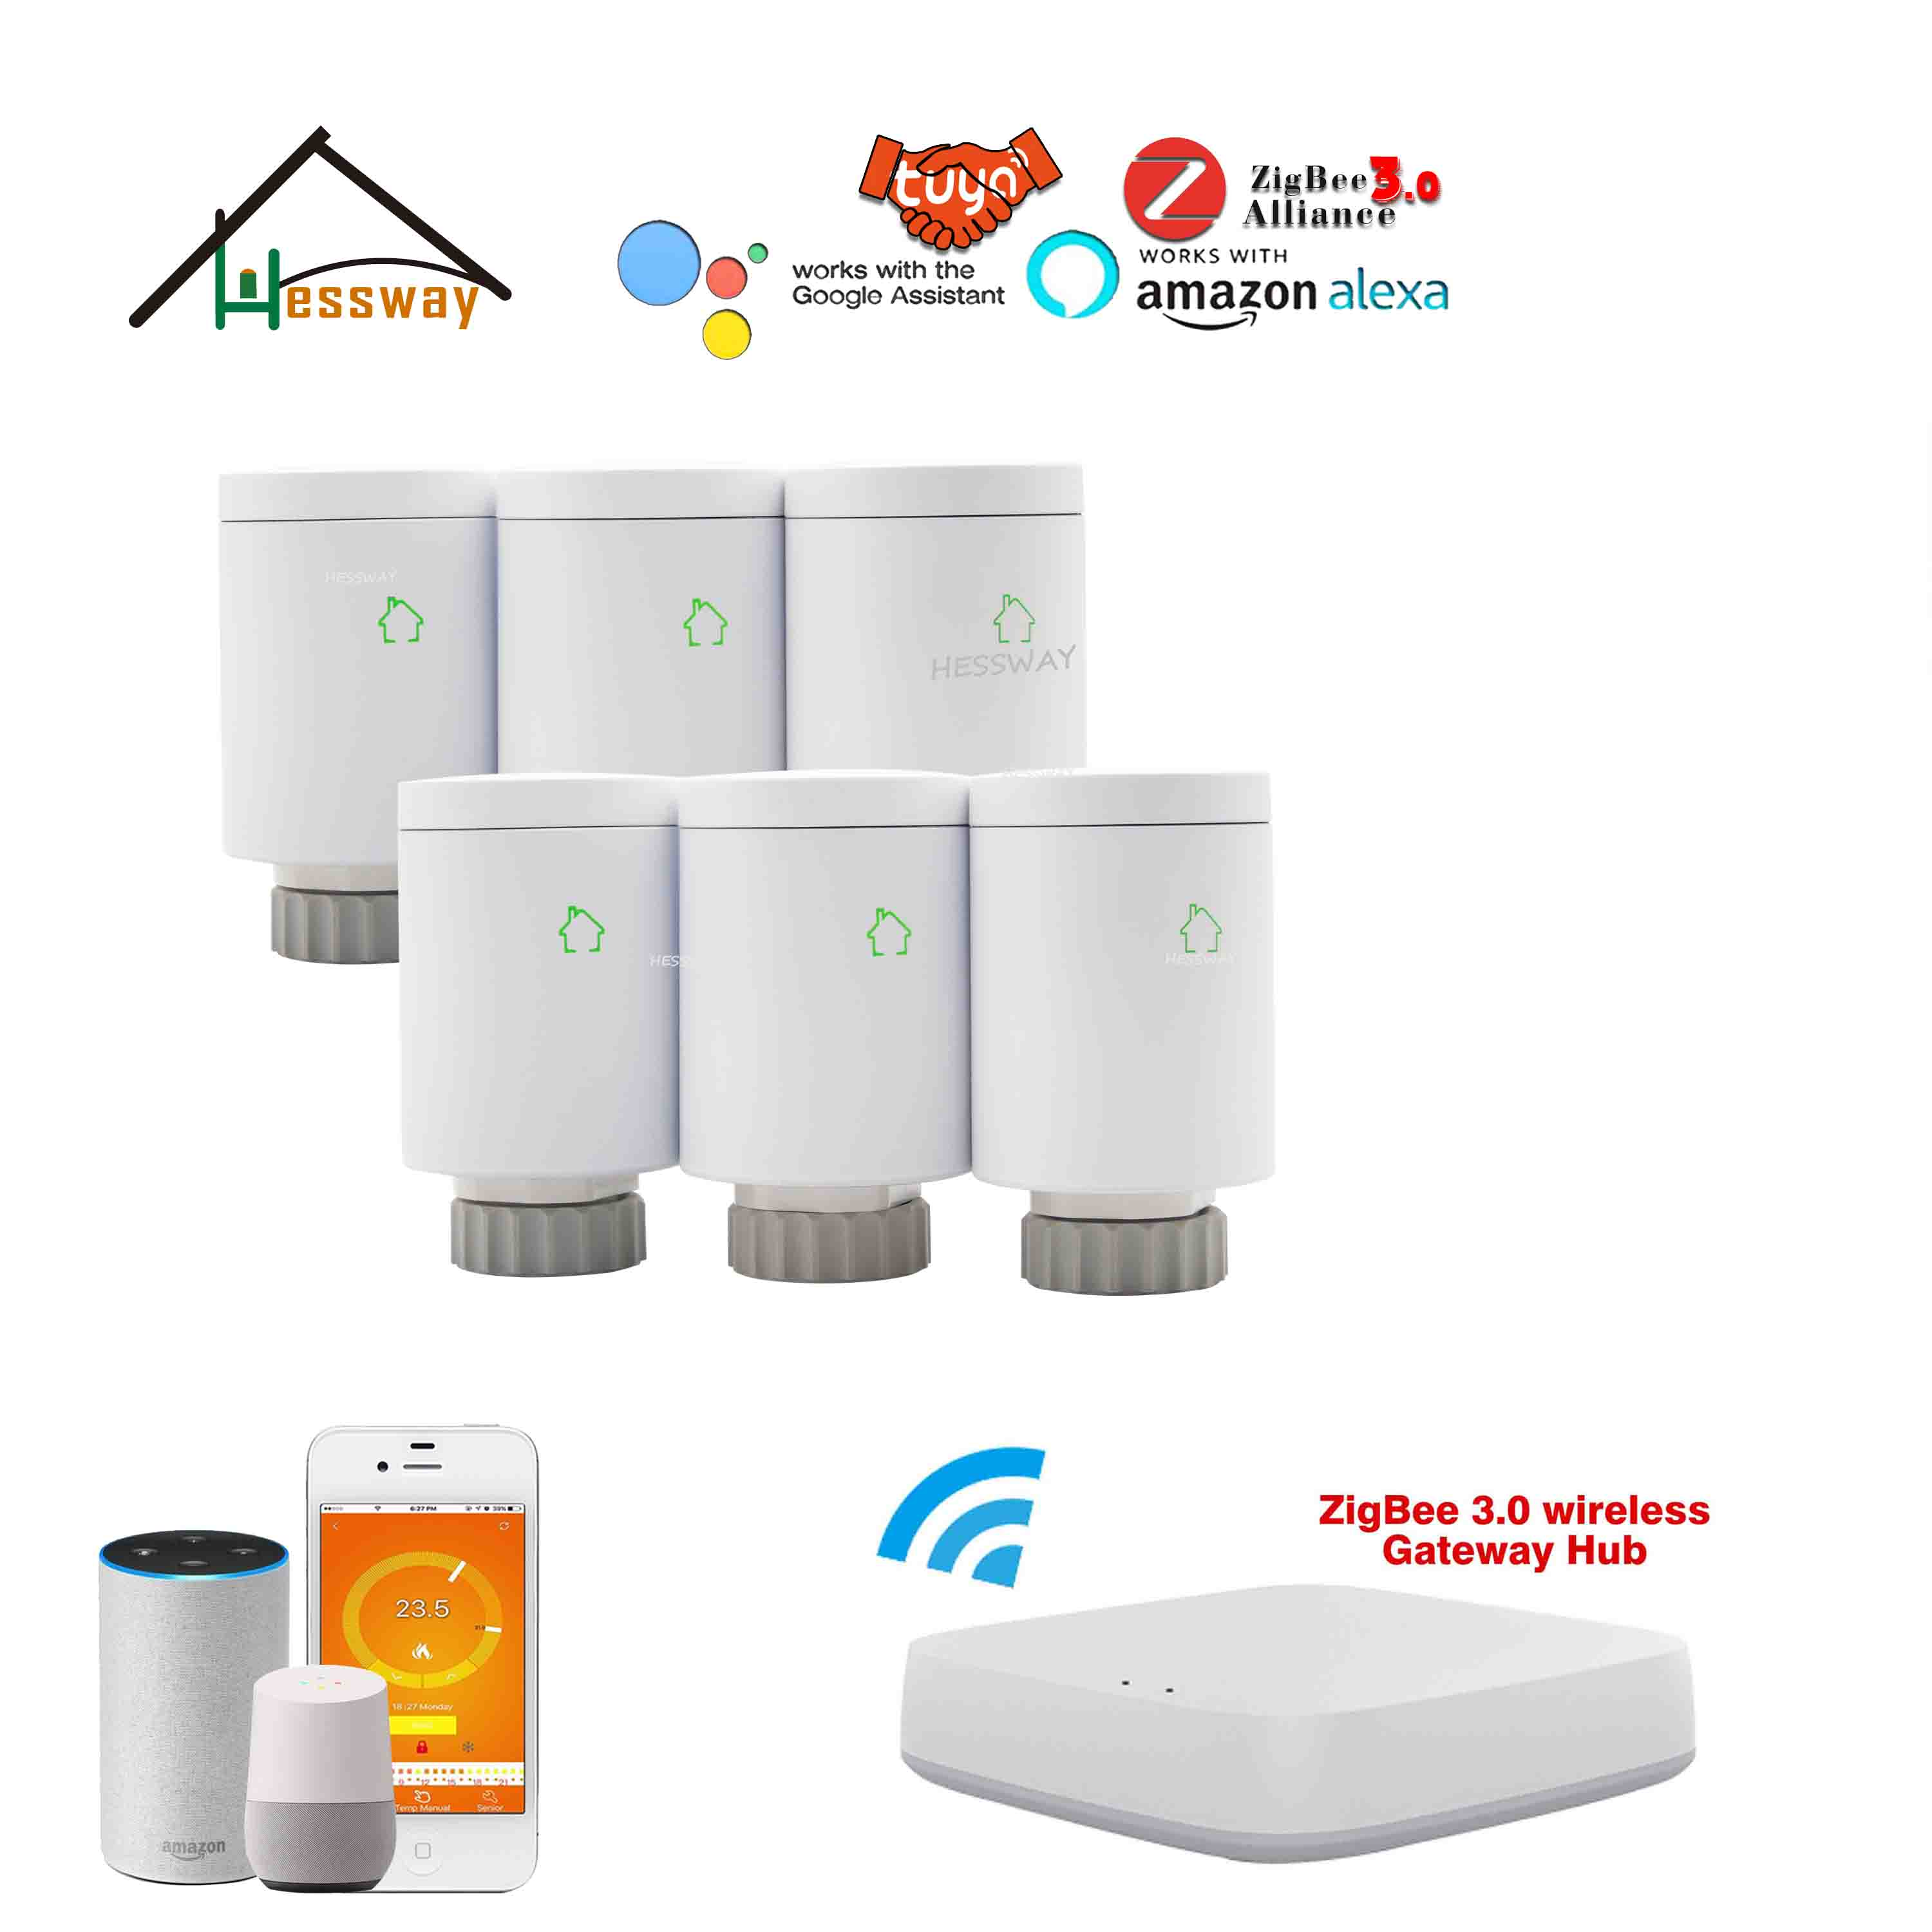 HESSWAY WIFI Tuya Zigbee Temperature Thermostat Valve For Smart Gateway Control Radiant Floor Heating